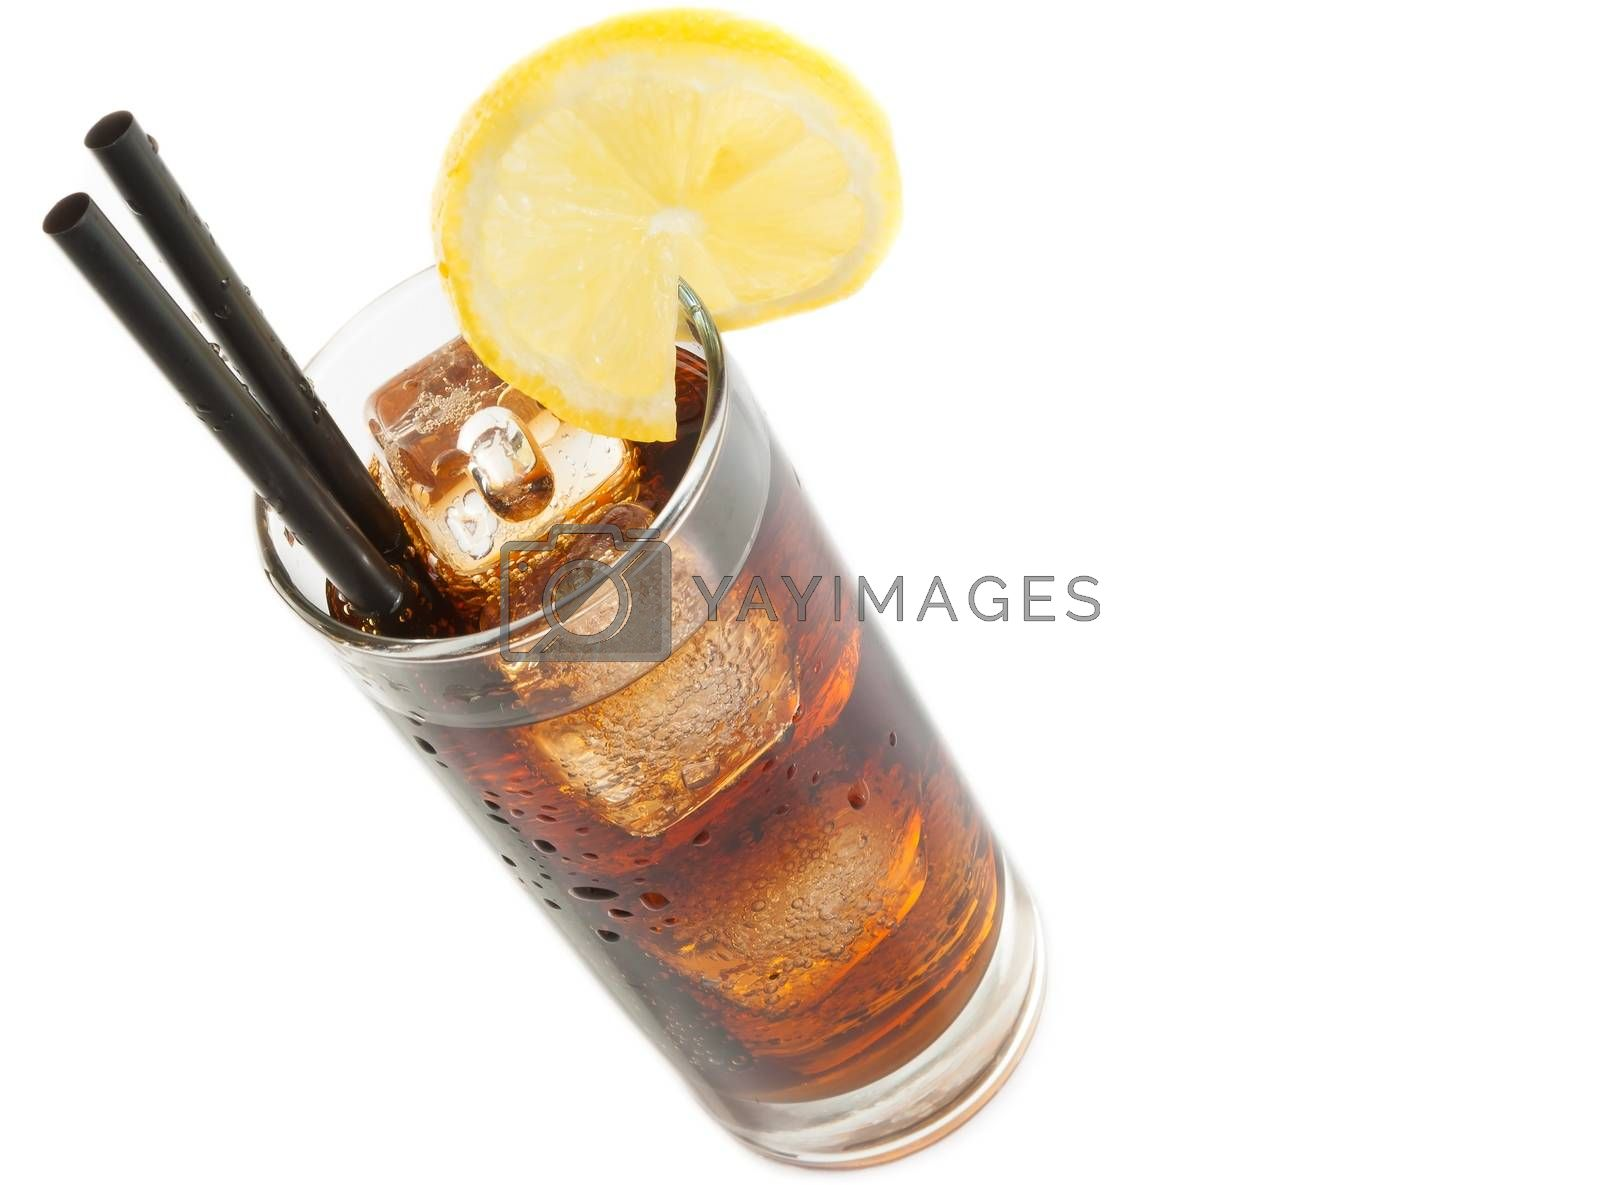 fresh coke with straw with lemon slice on top, summer time by donfiore